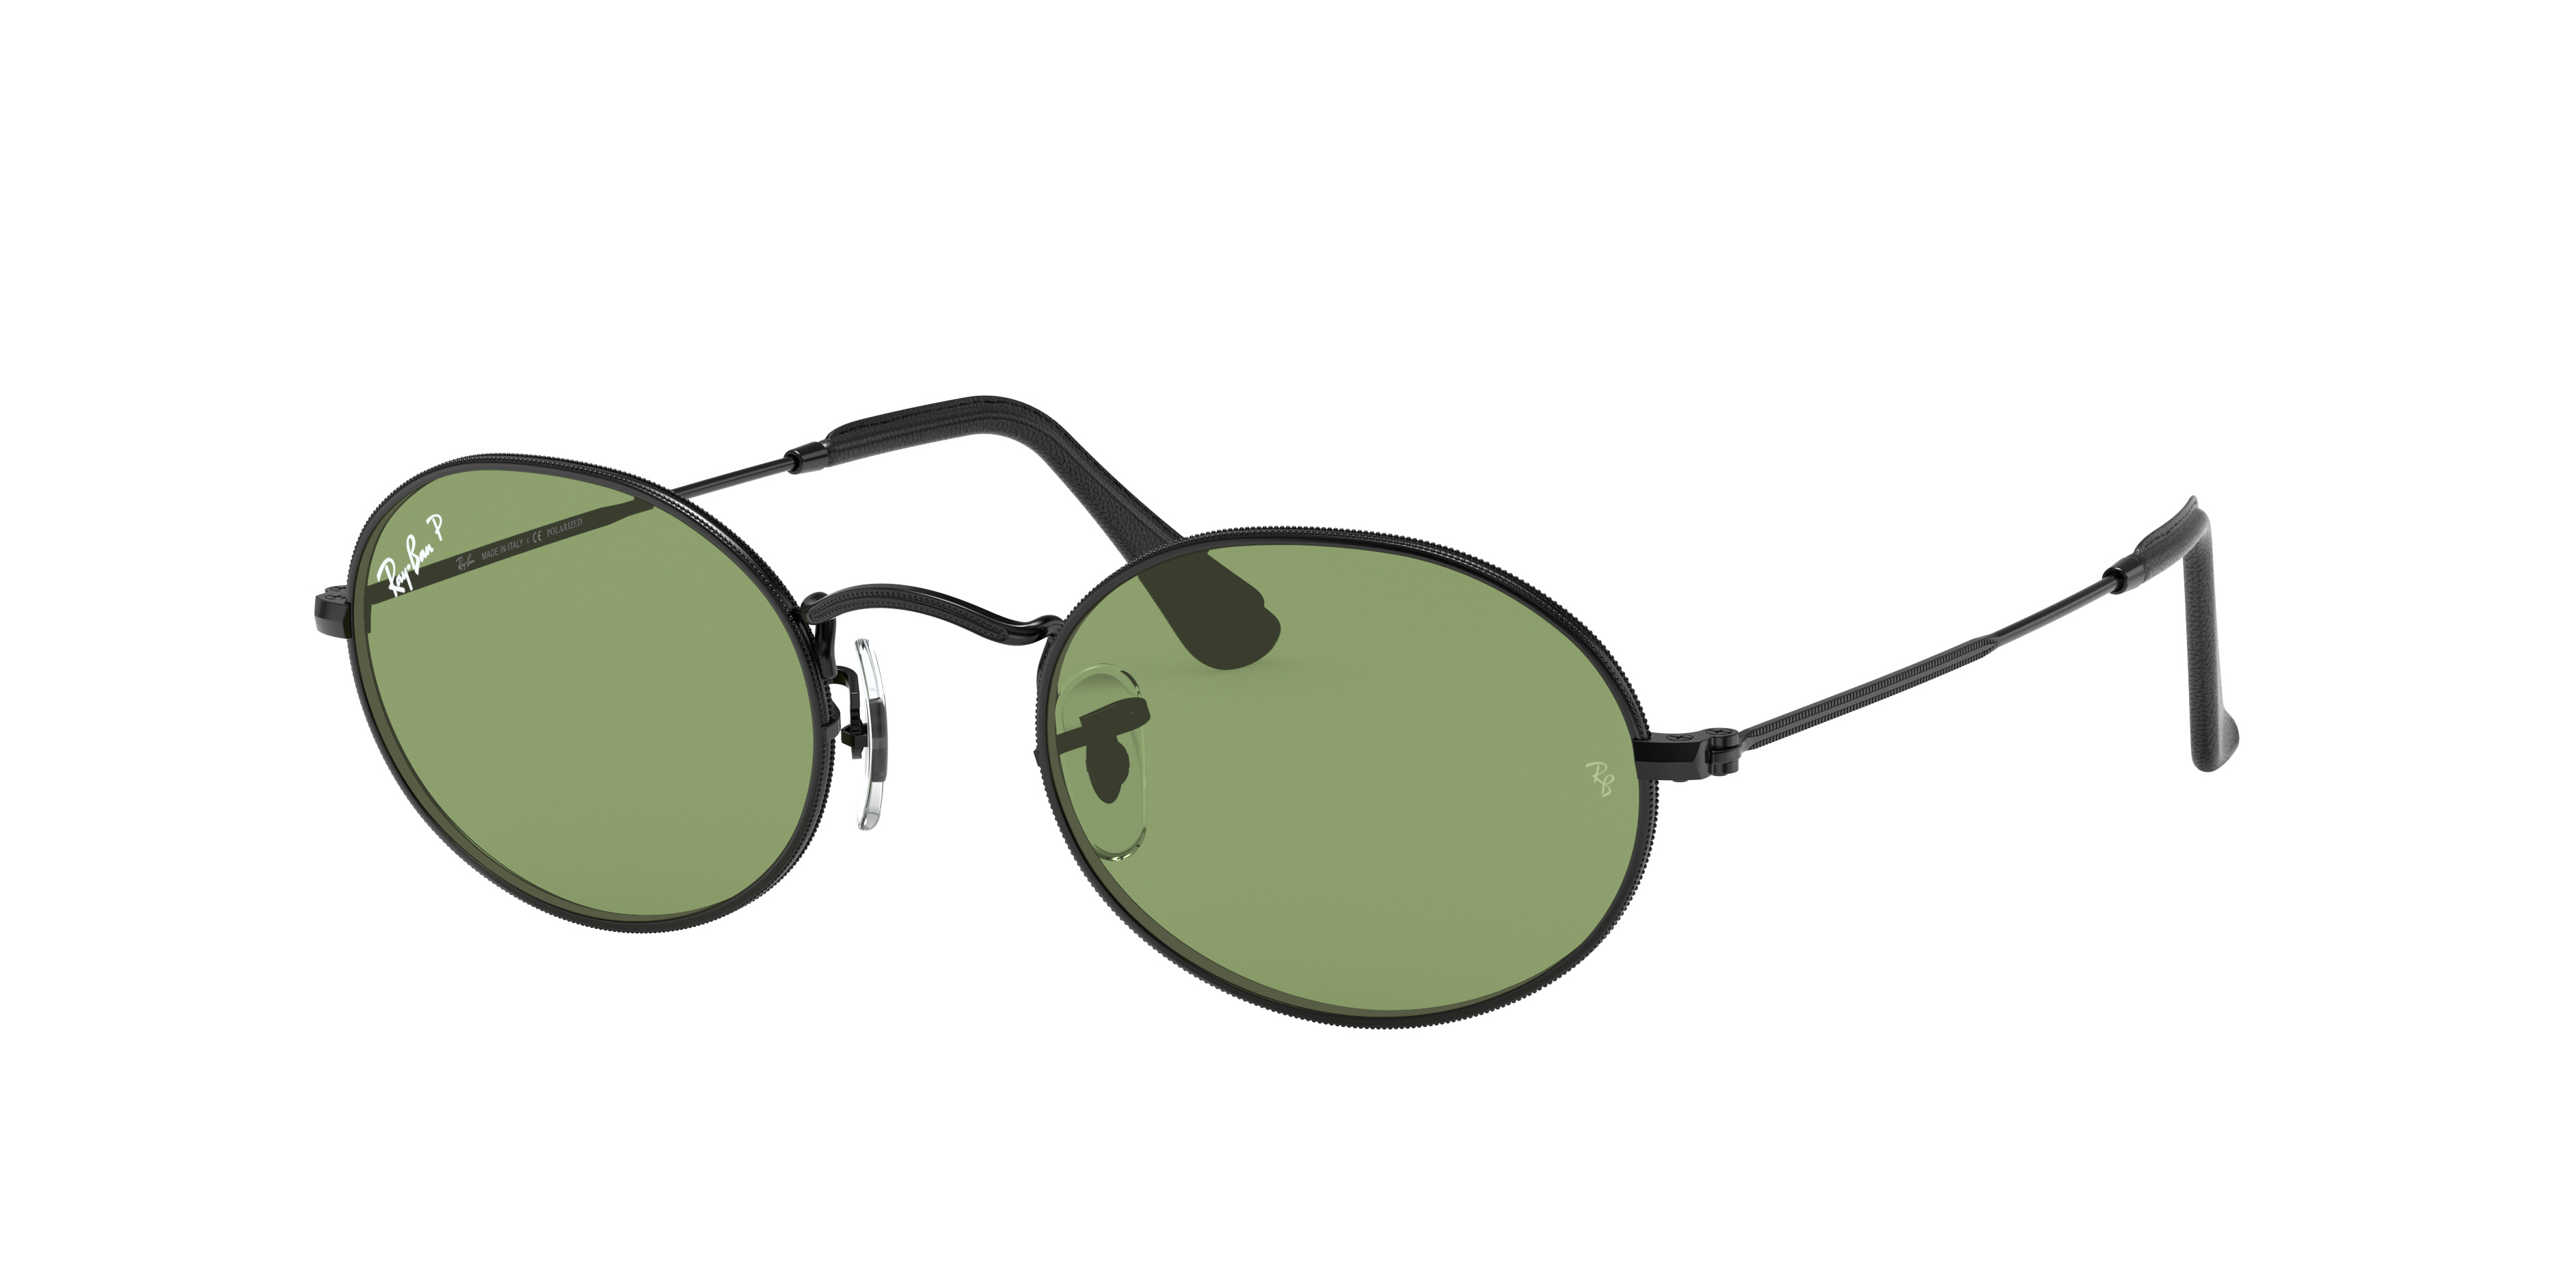 Ray-Ban Oval @collection Black, Polarized Green Lenses - RB3547